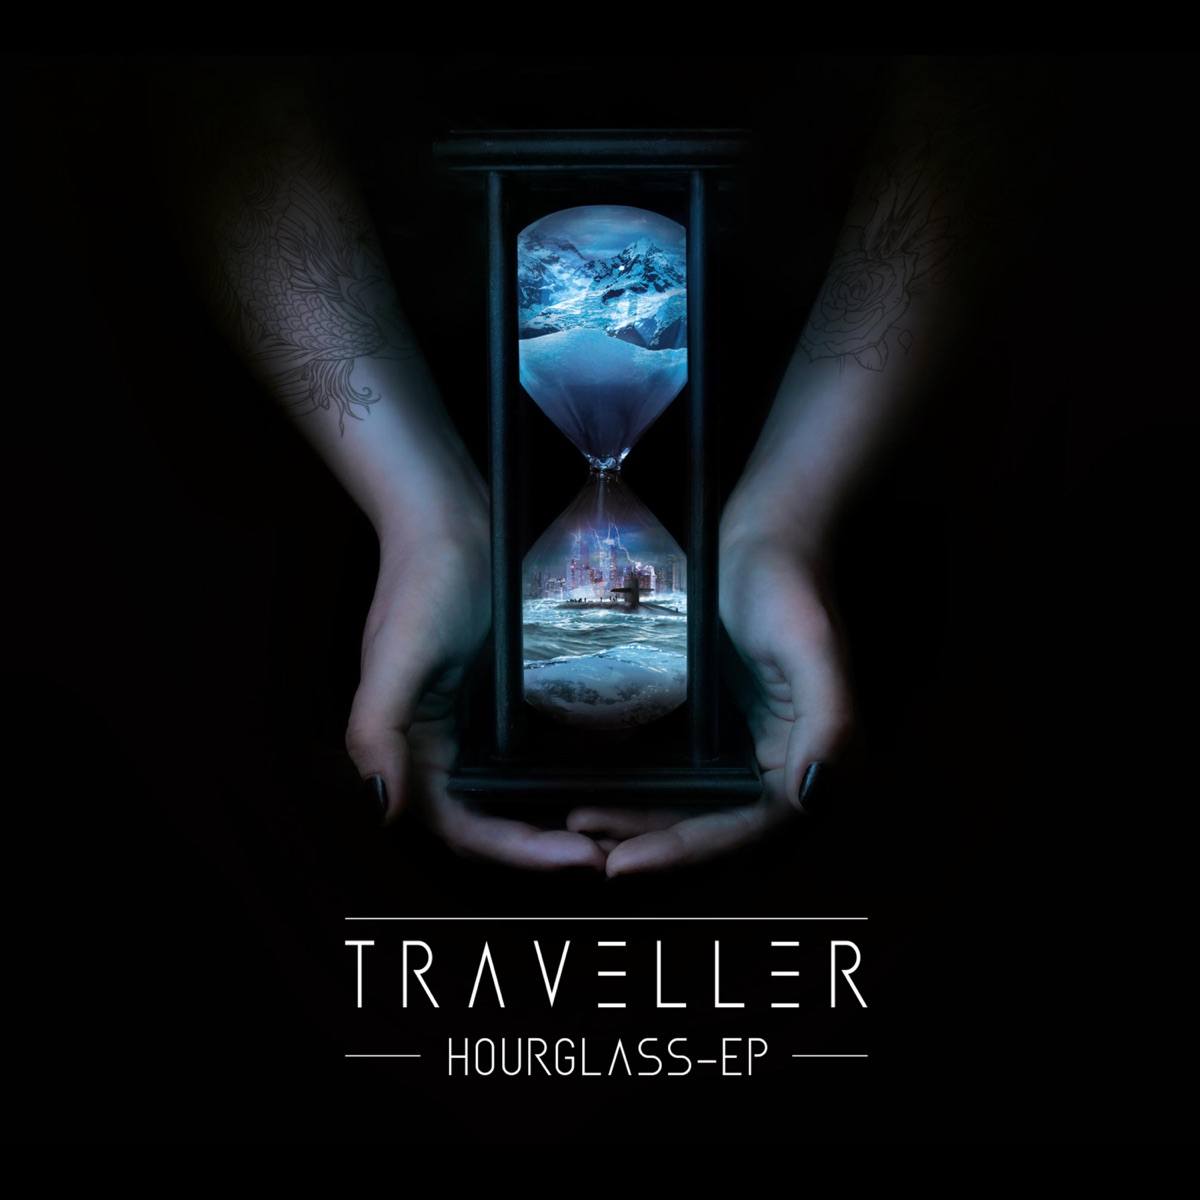 Hourglass EP Traveller CD cover